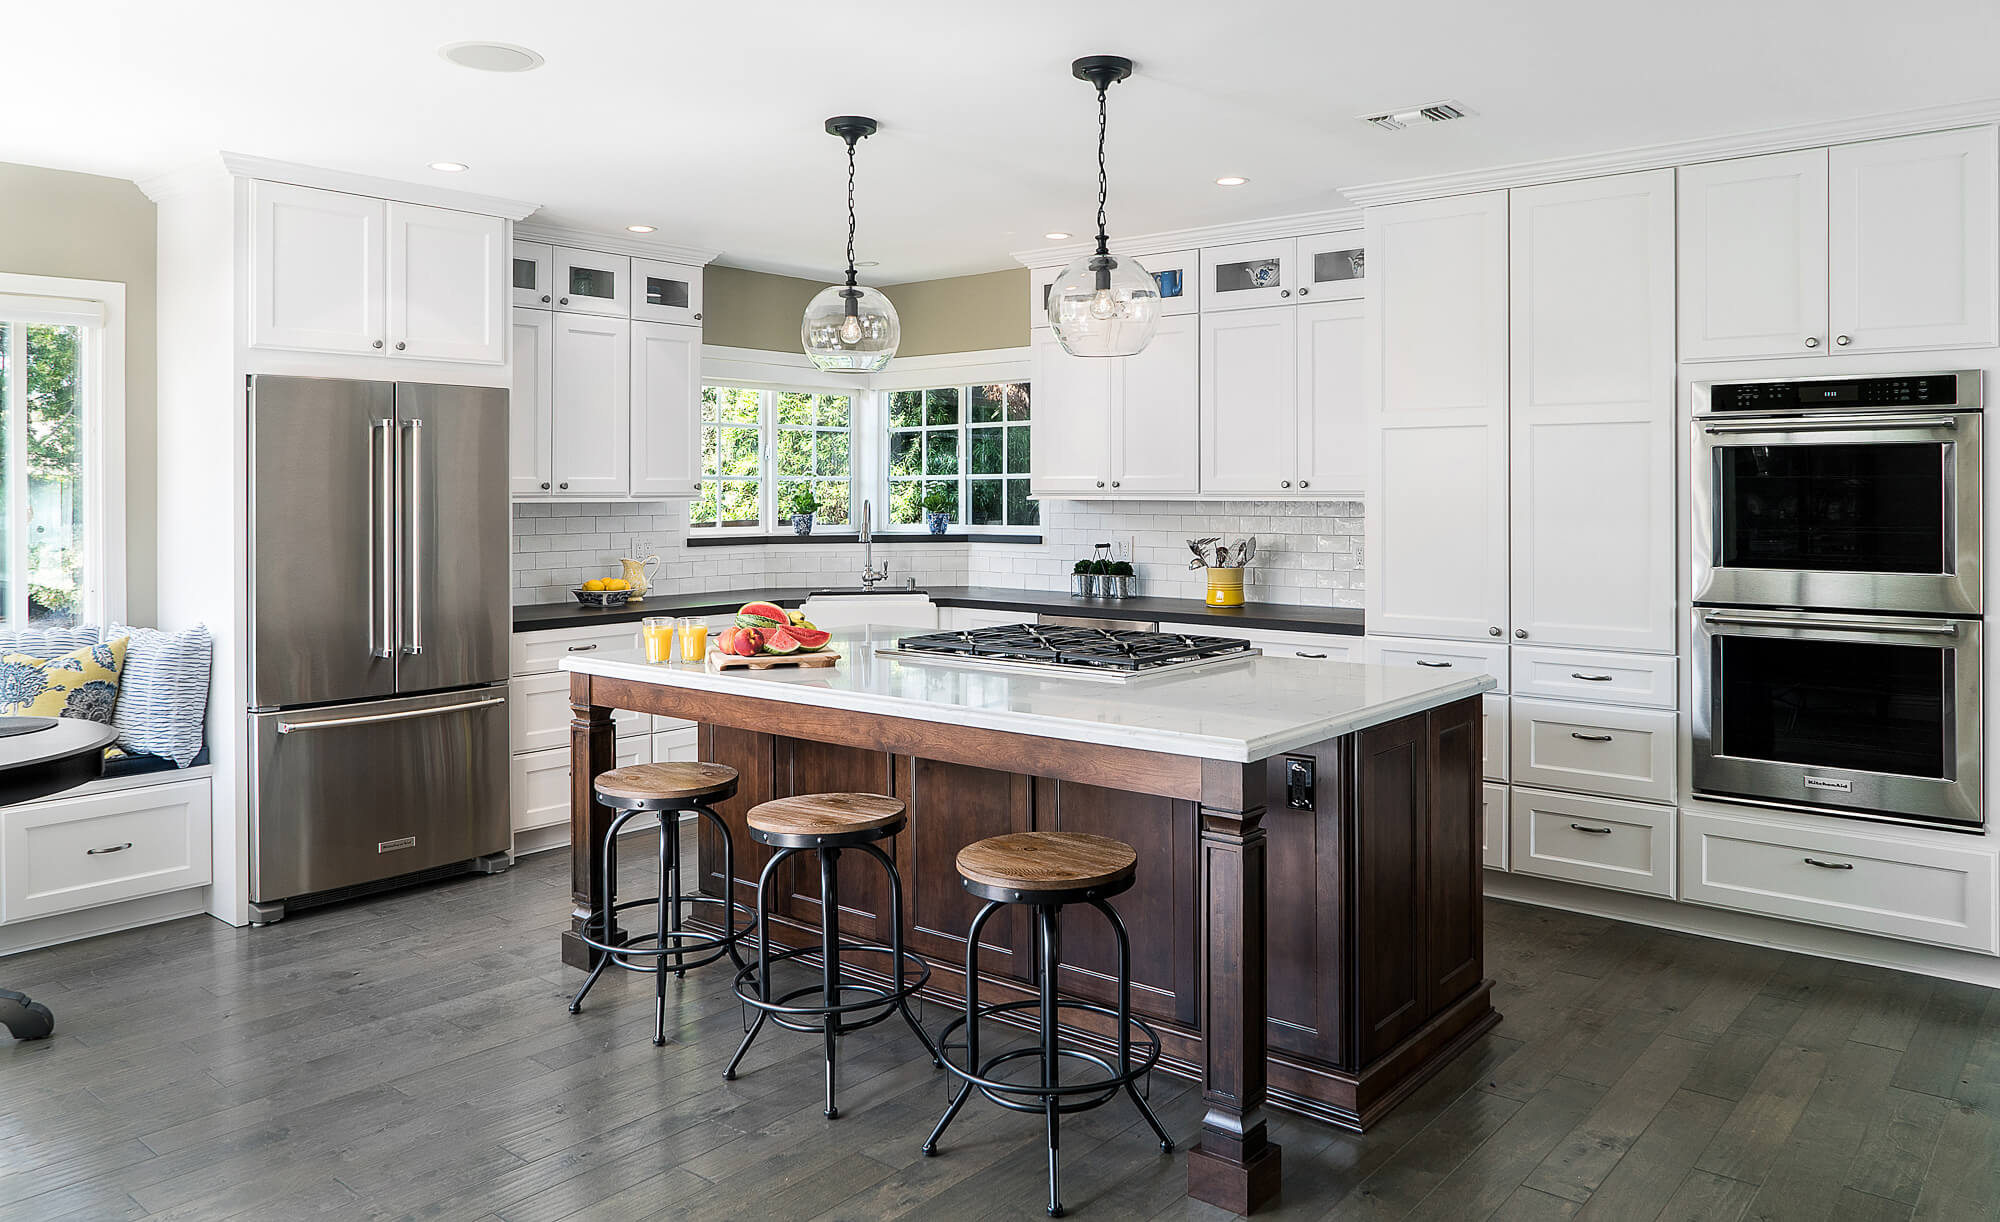 Kitchen Remodel Planning Guide: Where to Start & What to Expect